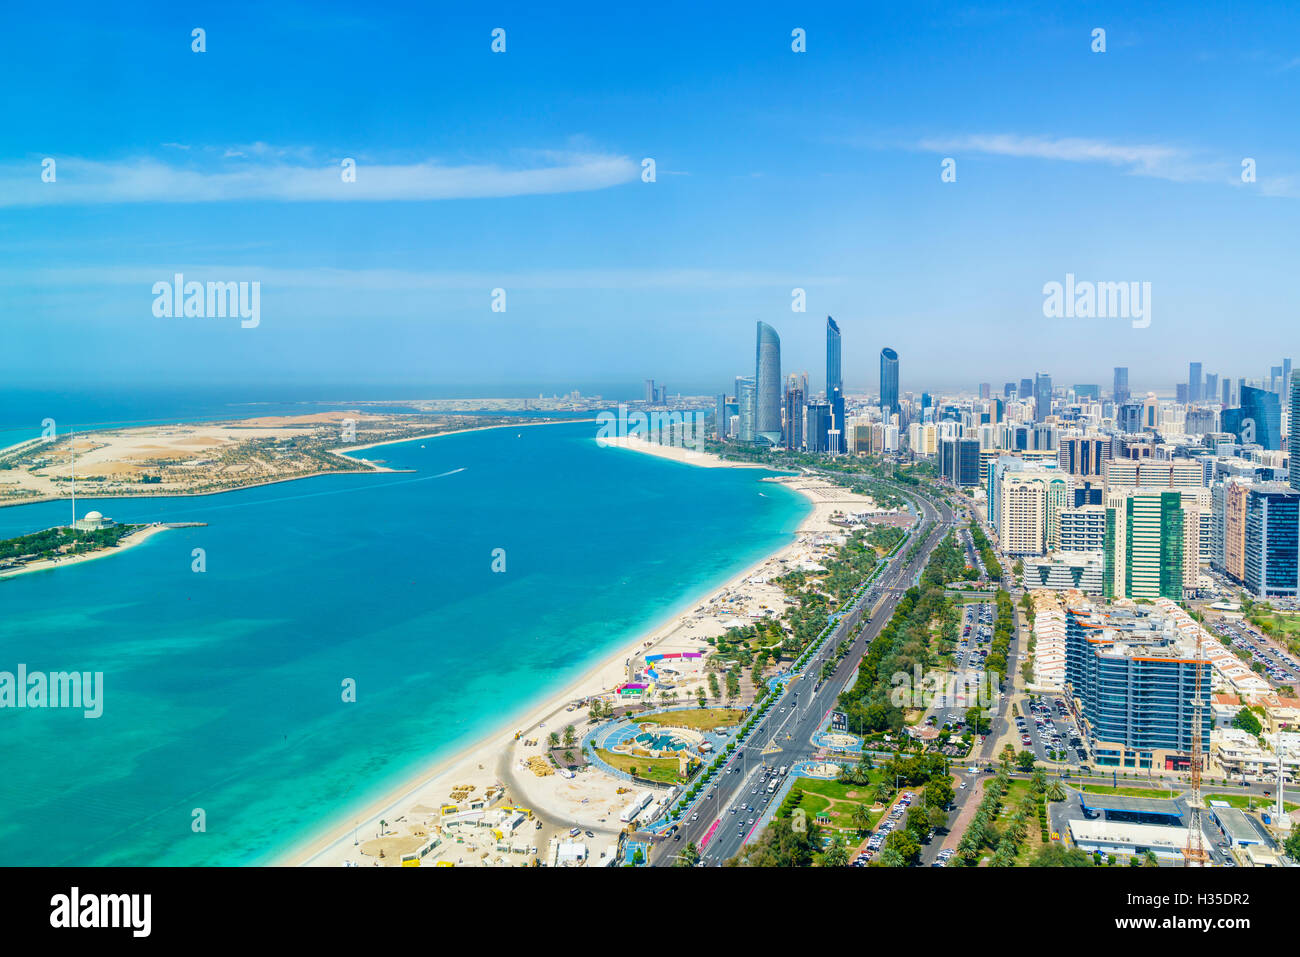 Skyline et corniche, Al district Markaziyah, Abu Dhabi, Émirats arabes unis, Moyen Orient Photo Stock